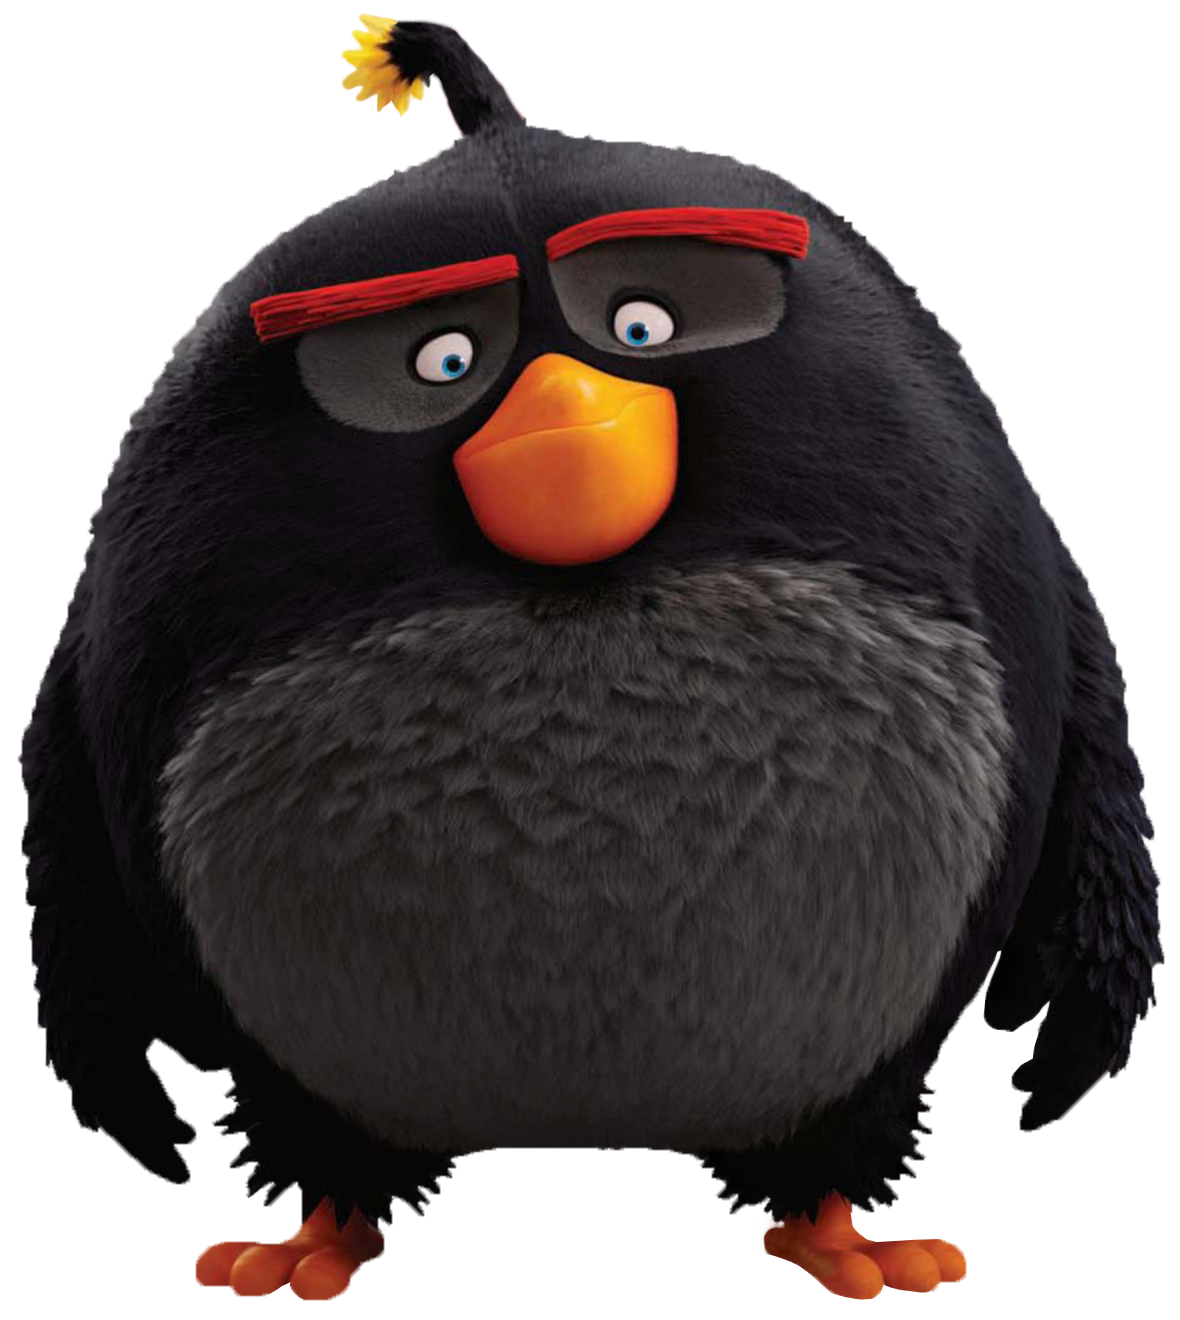 The Angry Birds Movie Bomb PNG Transparent Image.